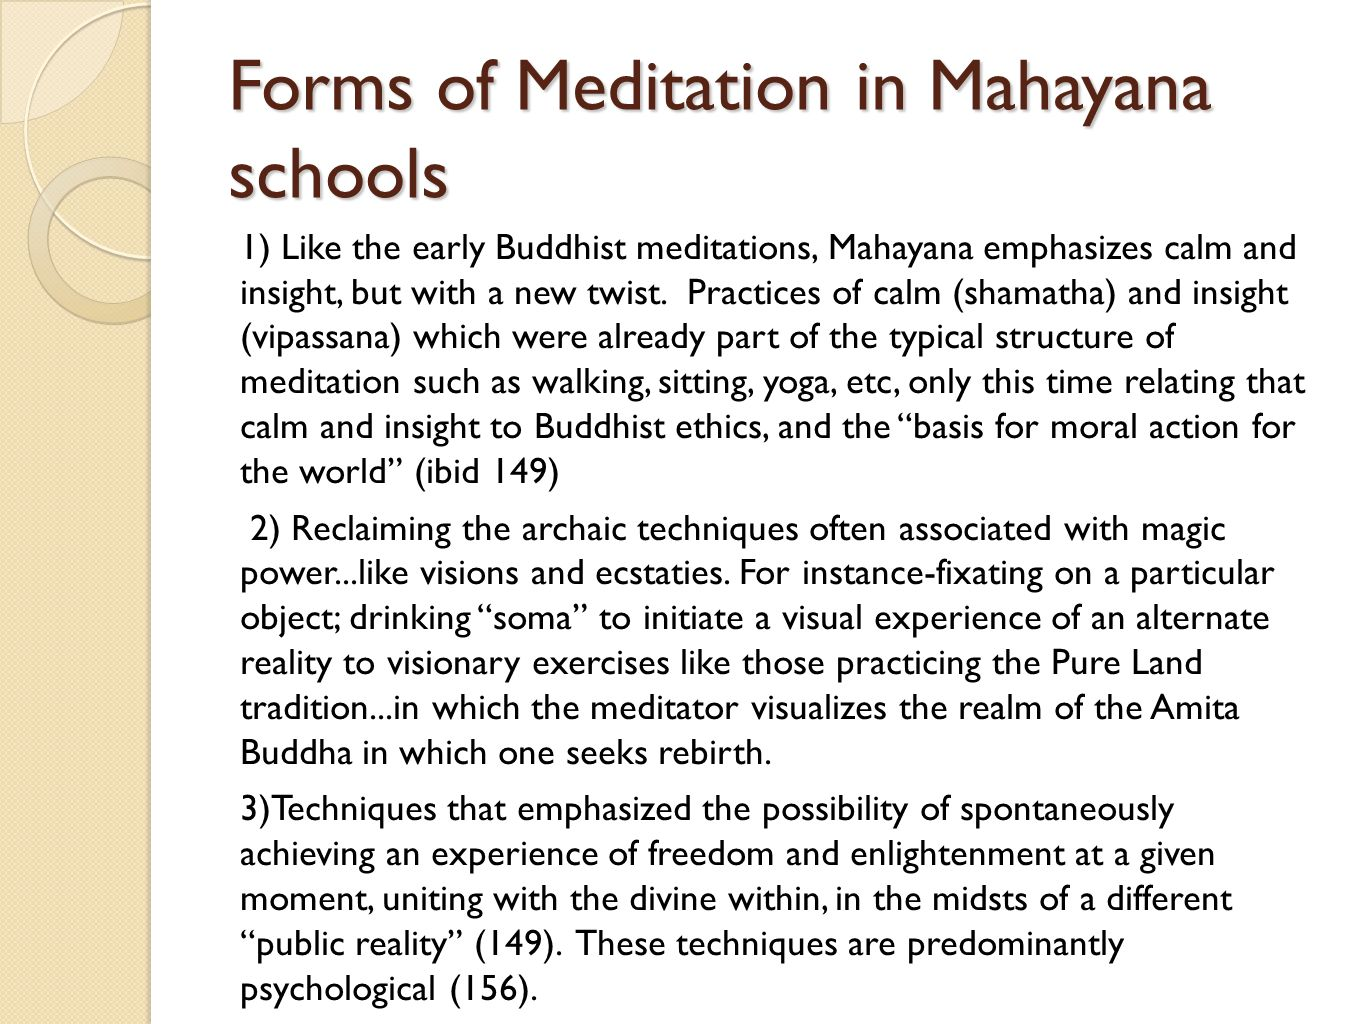 Forms of Meditation in Mahayana schools